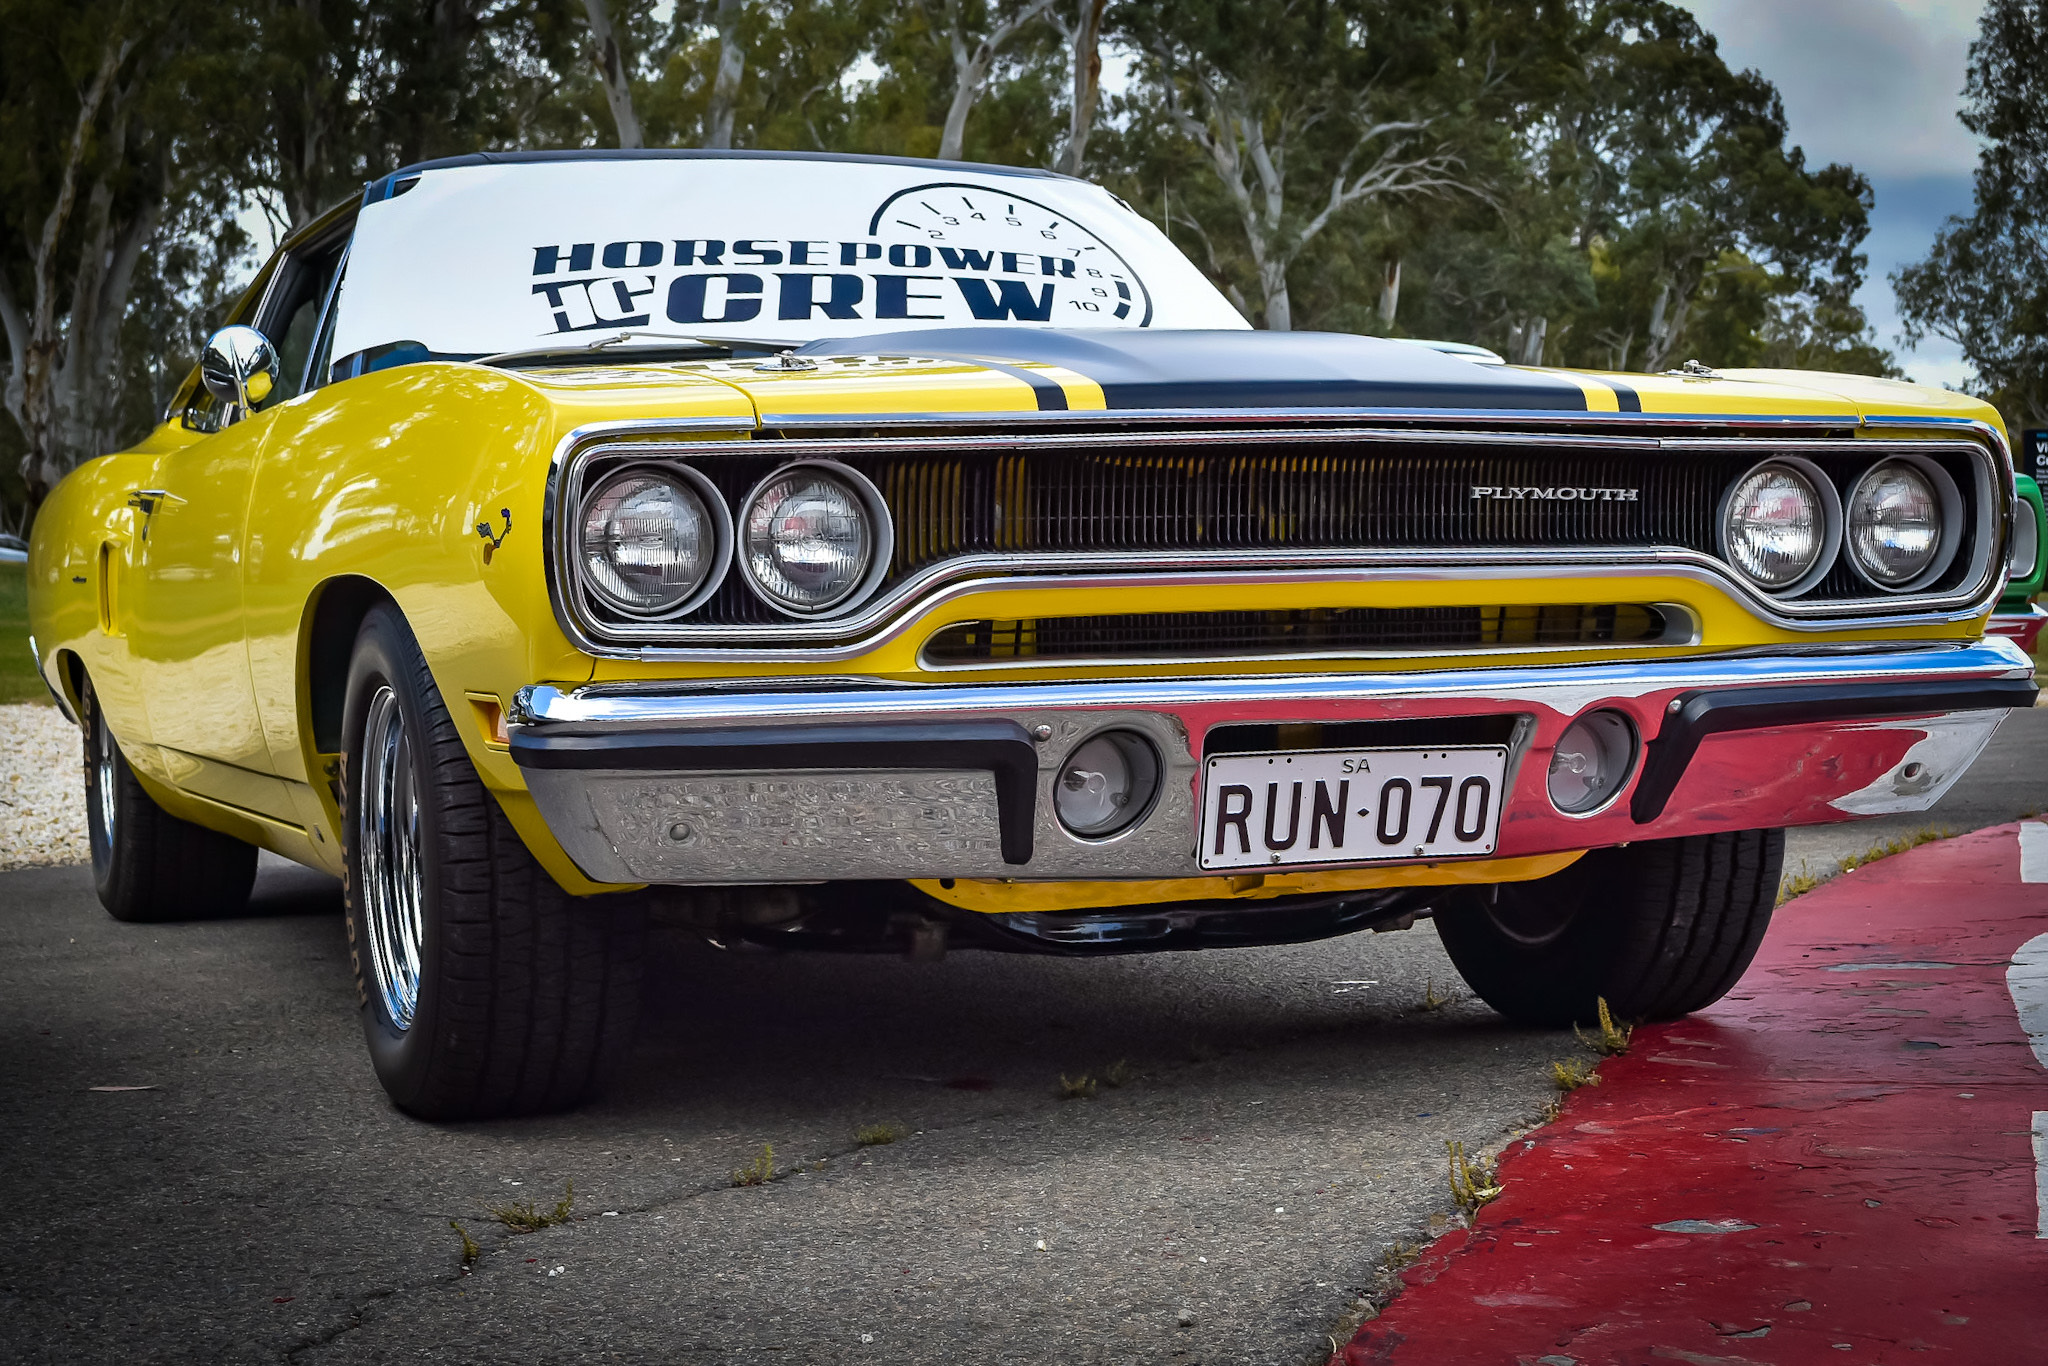 windscreen-cover-rev-gauge-classic-size-white-and-black-Road-runner